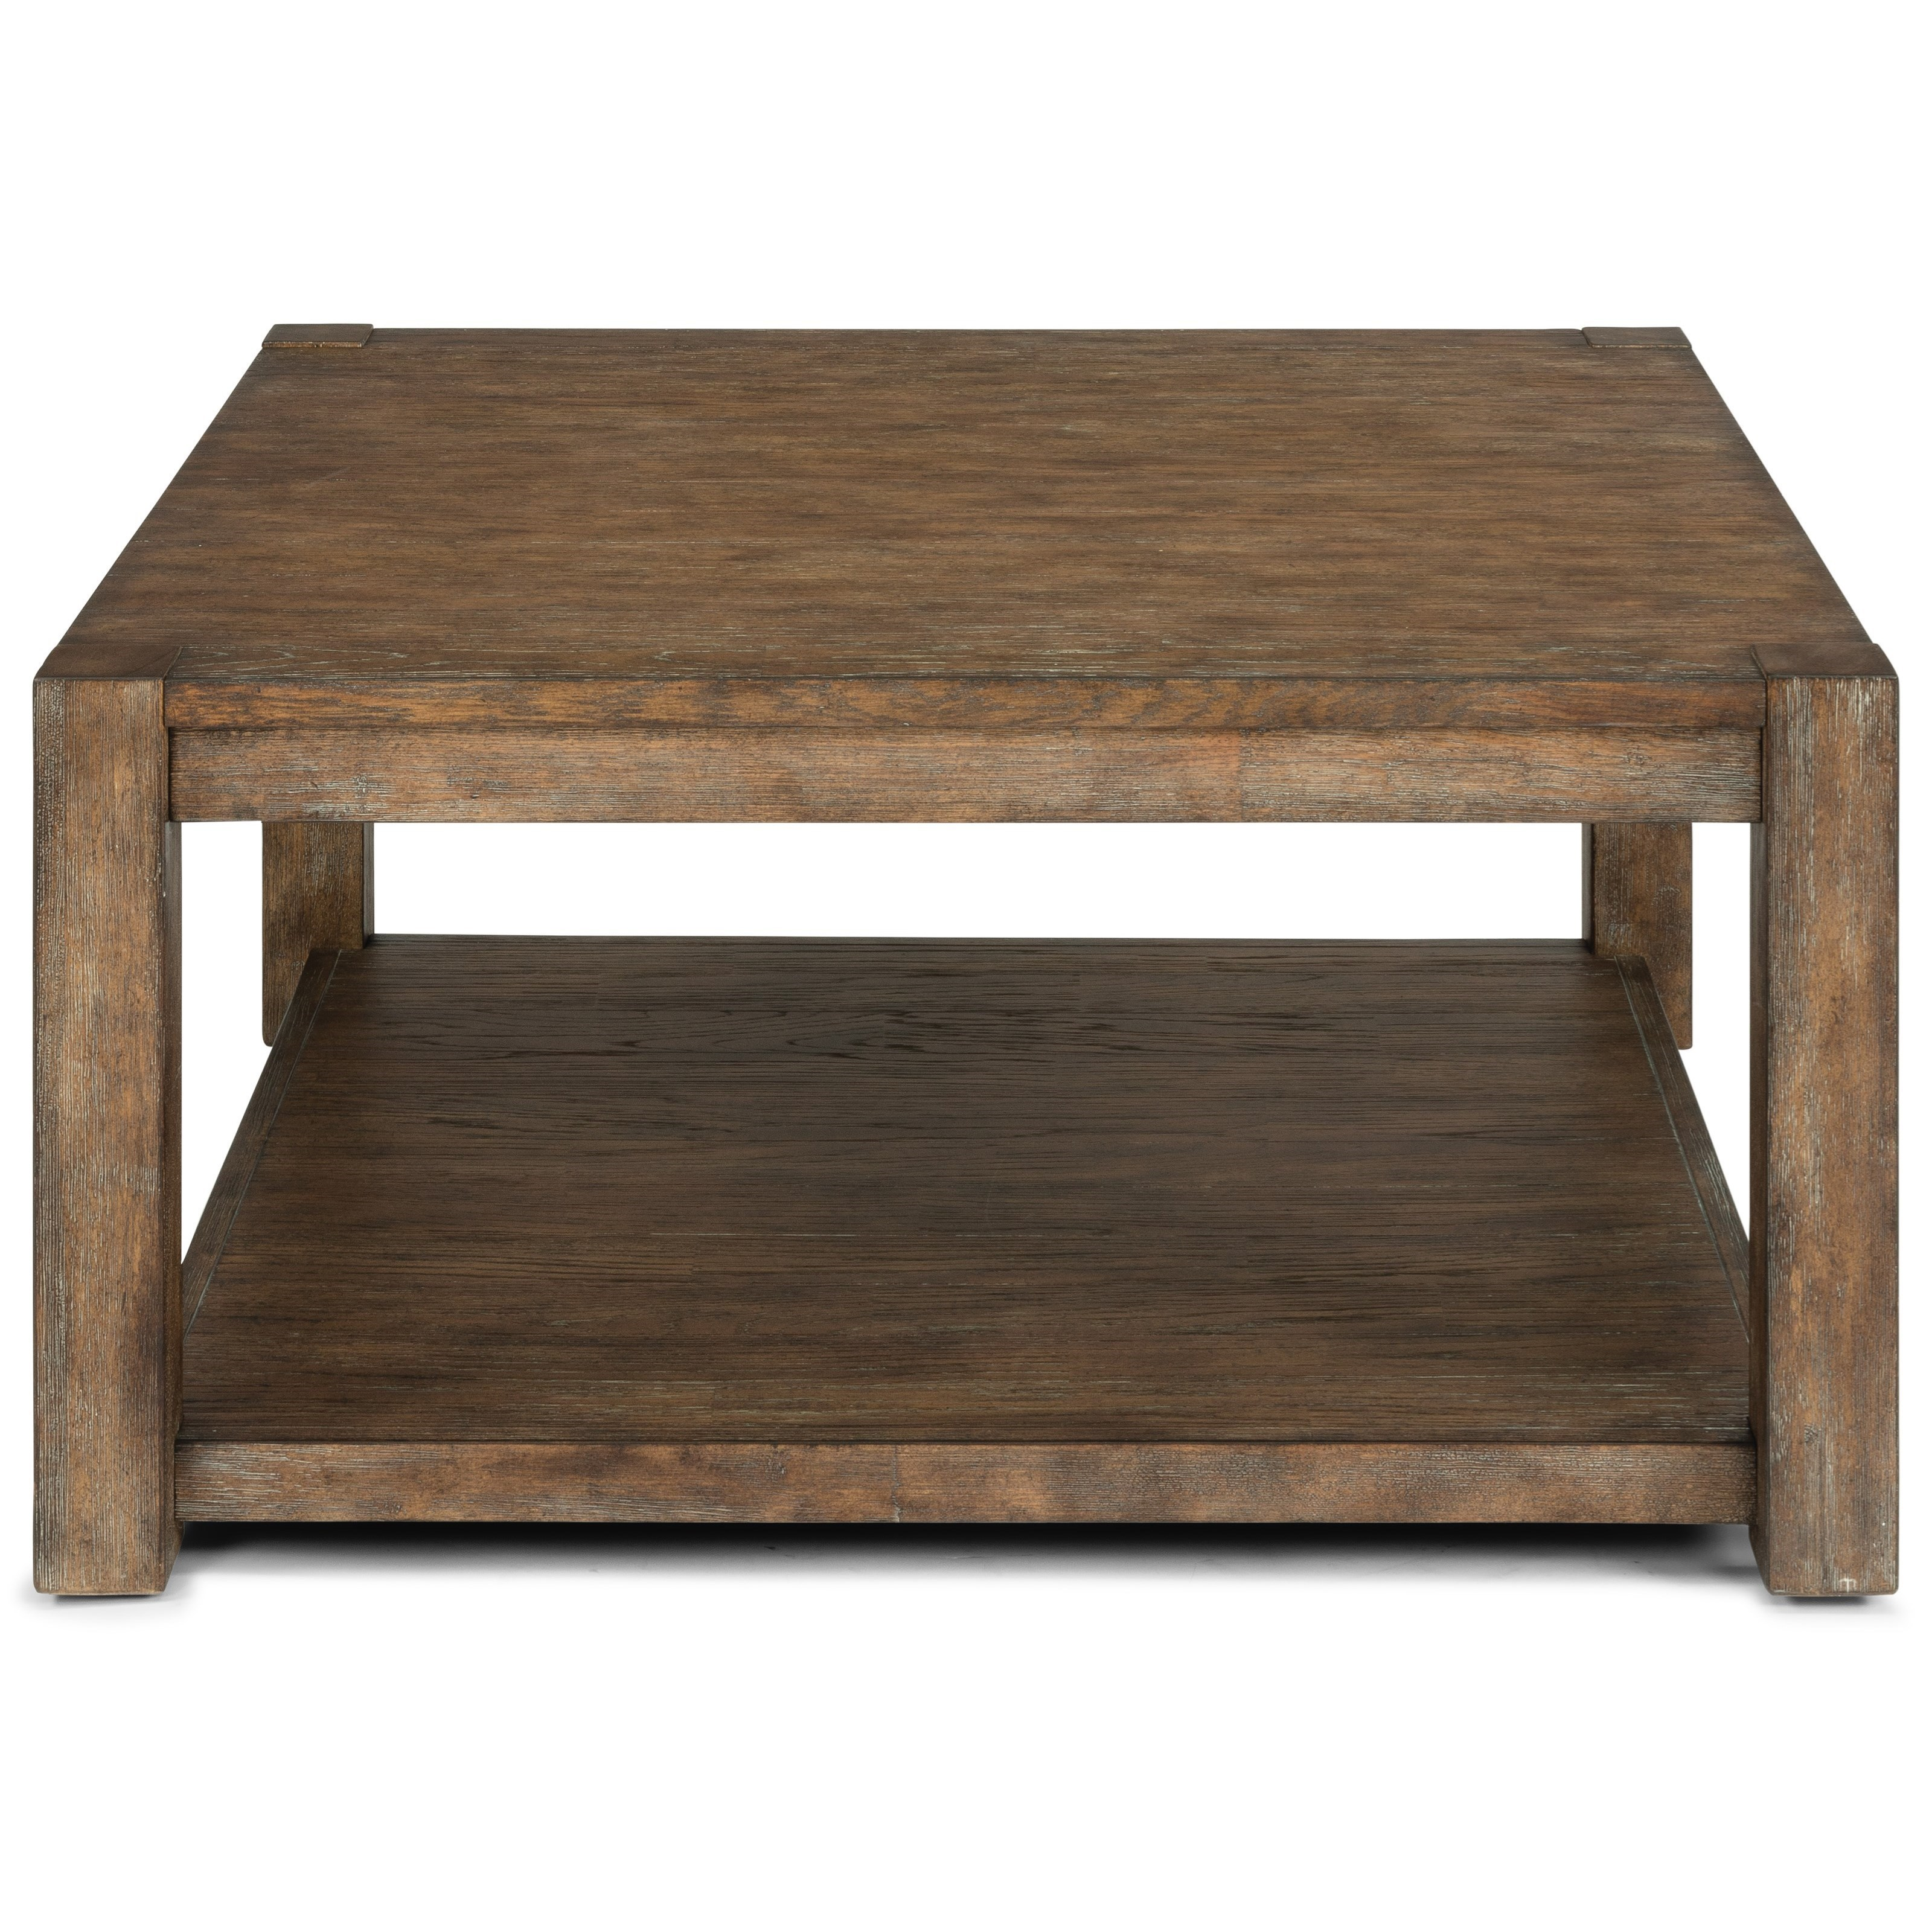 Casual Square Cocktail Table with Casters